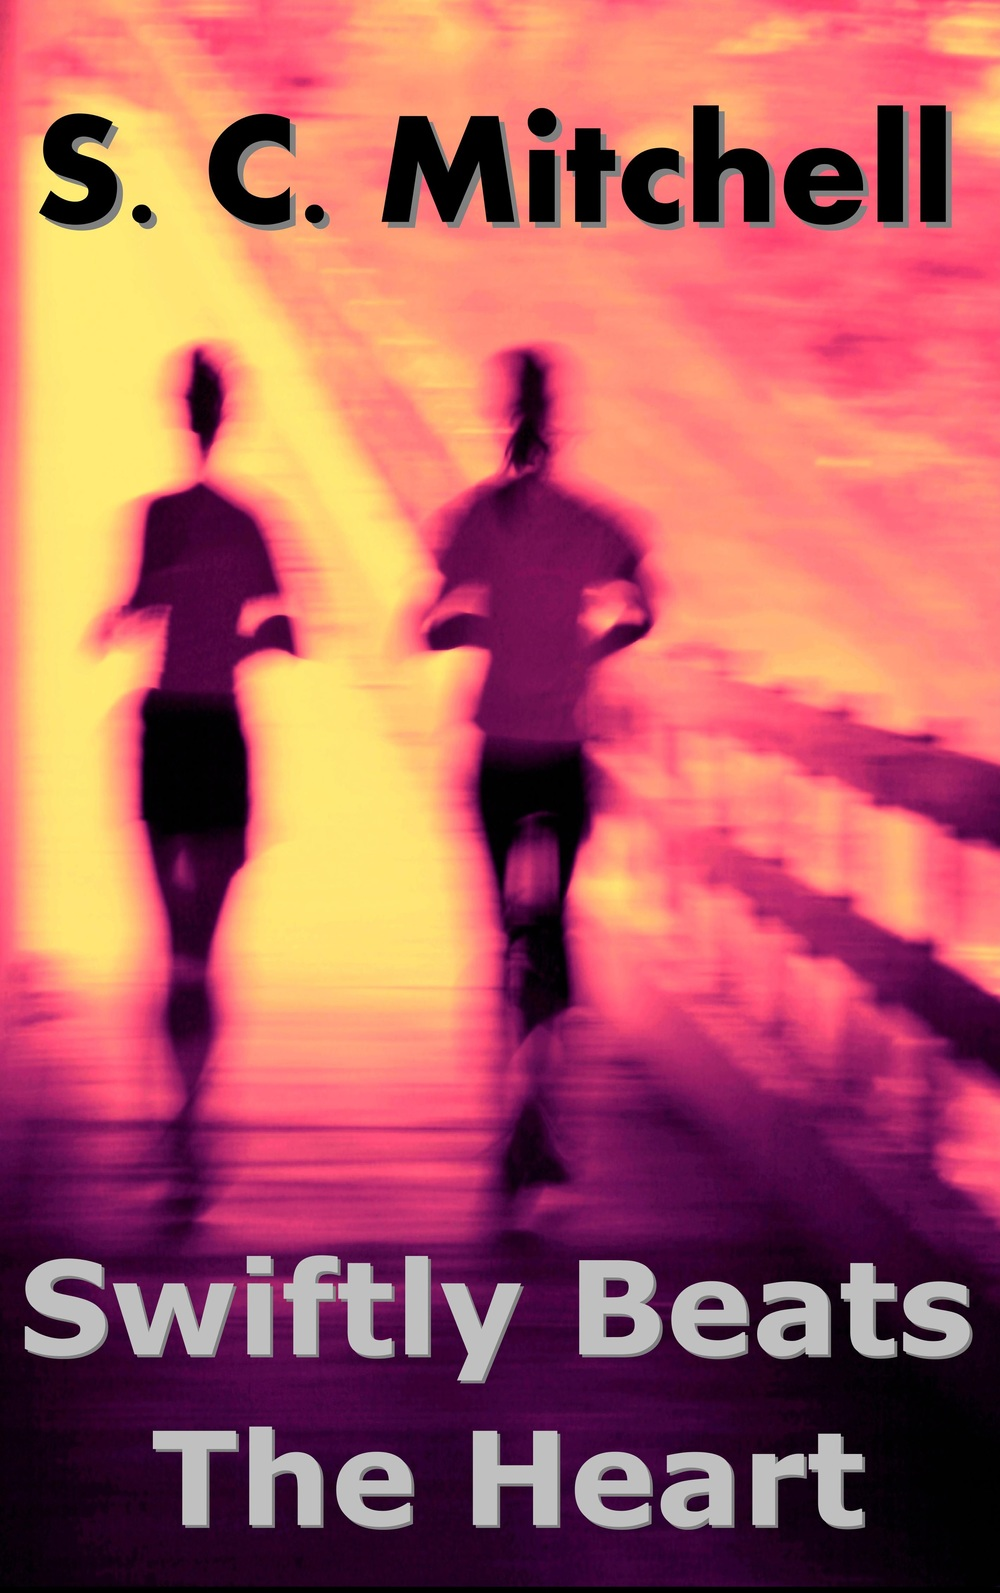 Swiftly Beats the Heart by S.C. Mitchell